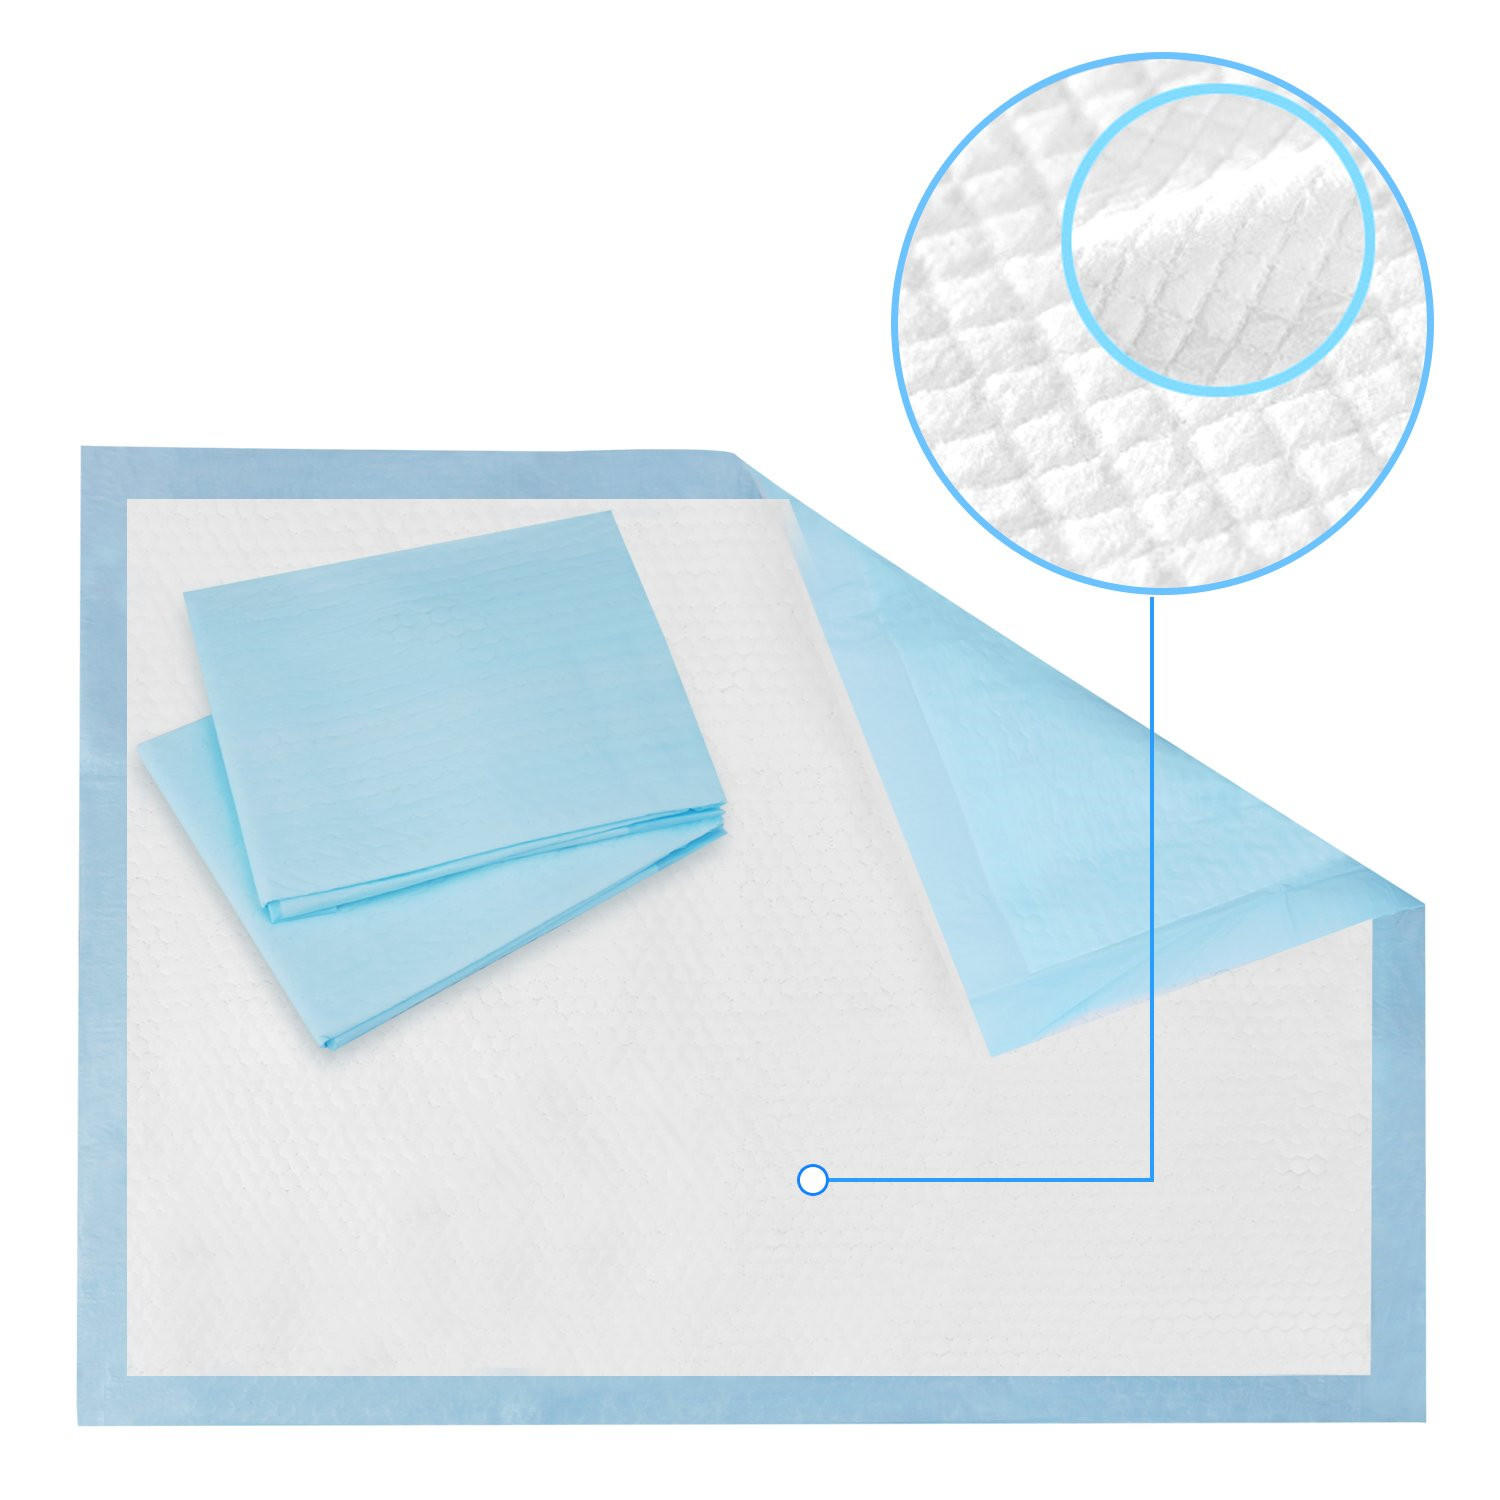 Disposable absorbent underpad baby/aldut/pet Incontinence Bed Pads NDANM-1-Niceday